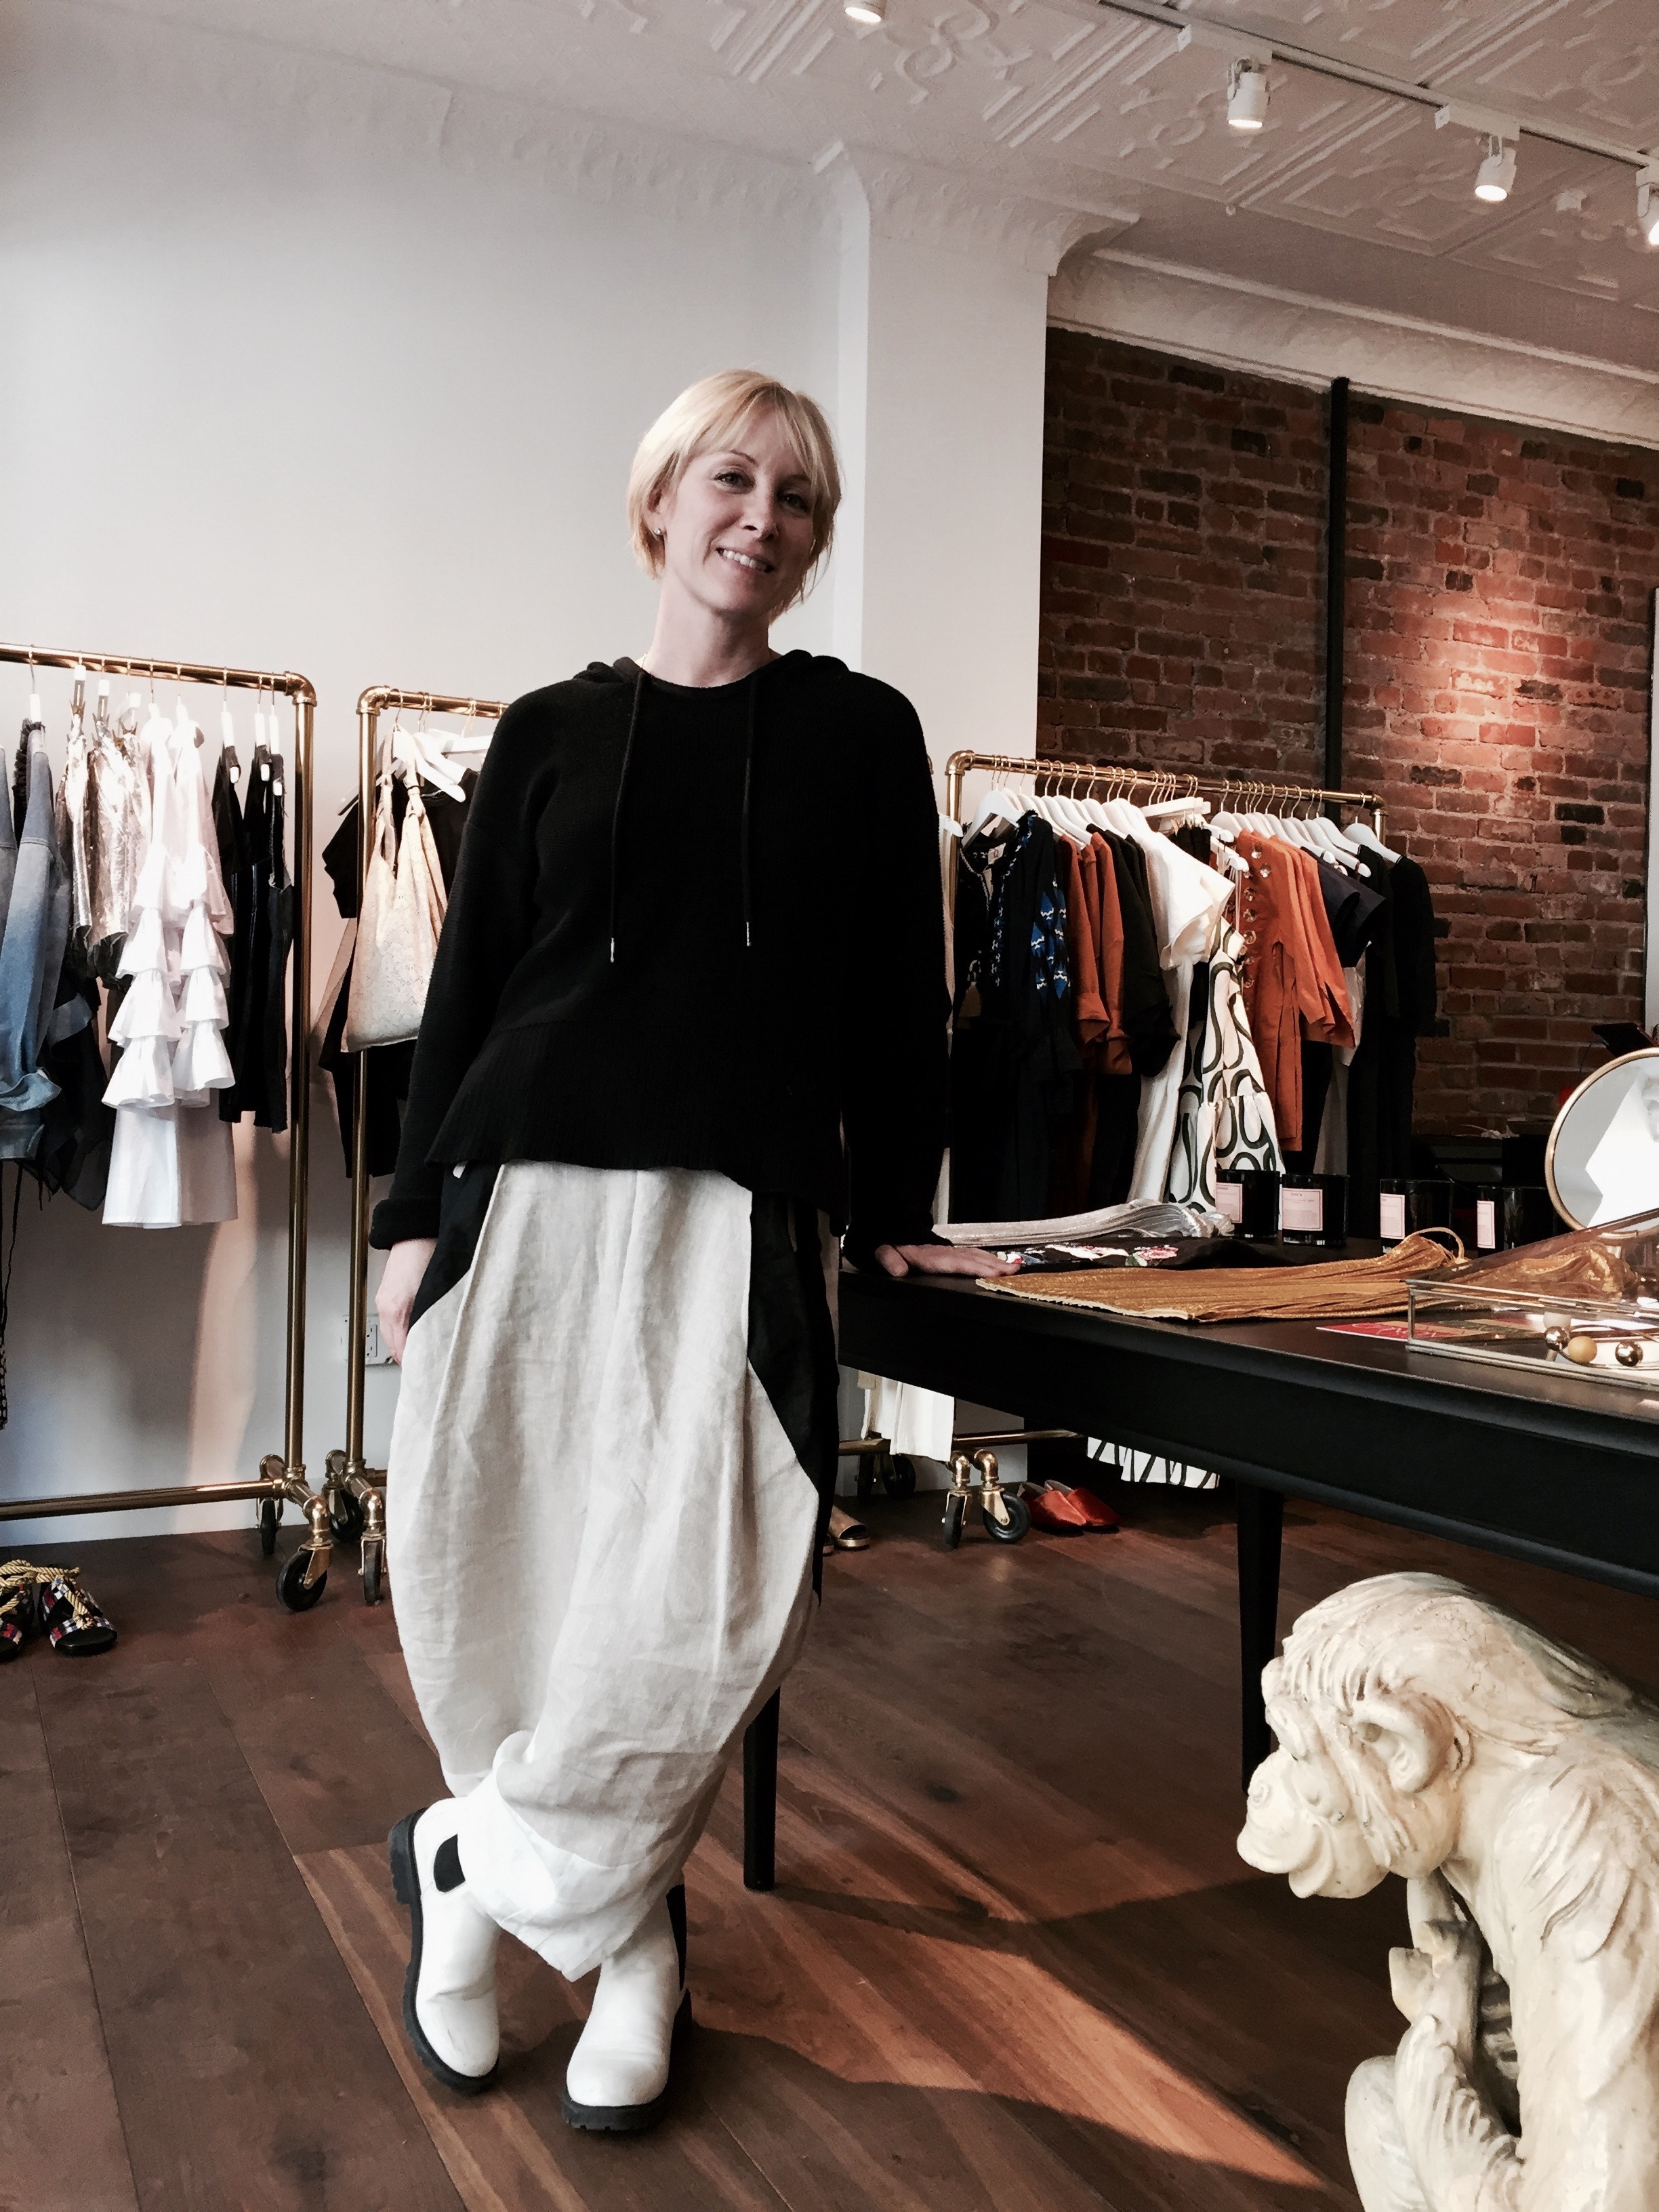 Top 5: Stacia Canon, Retail Visionary